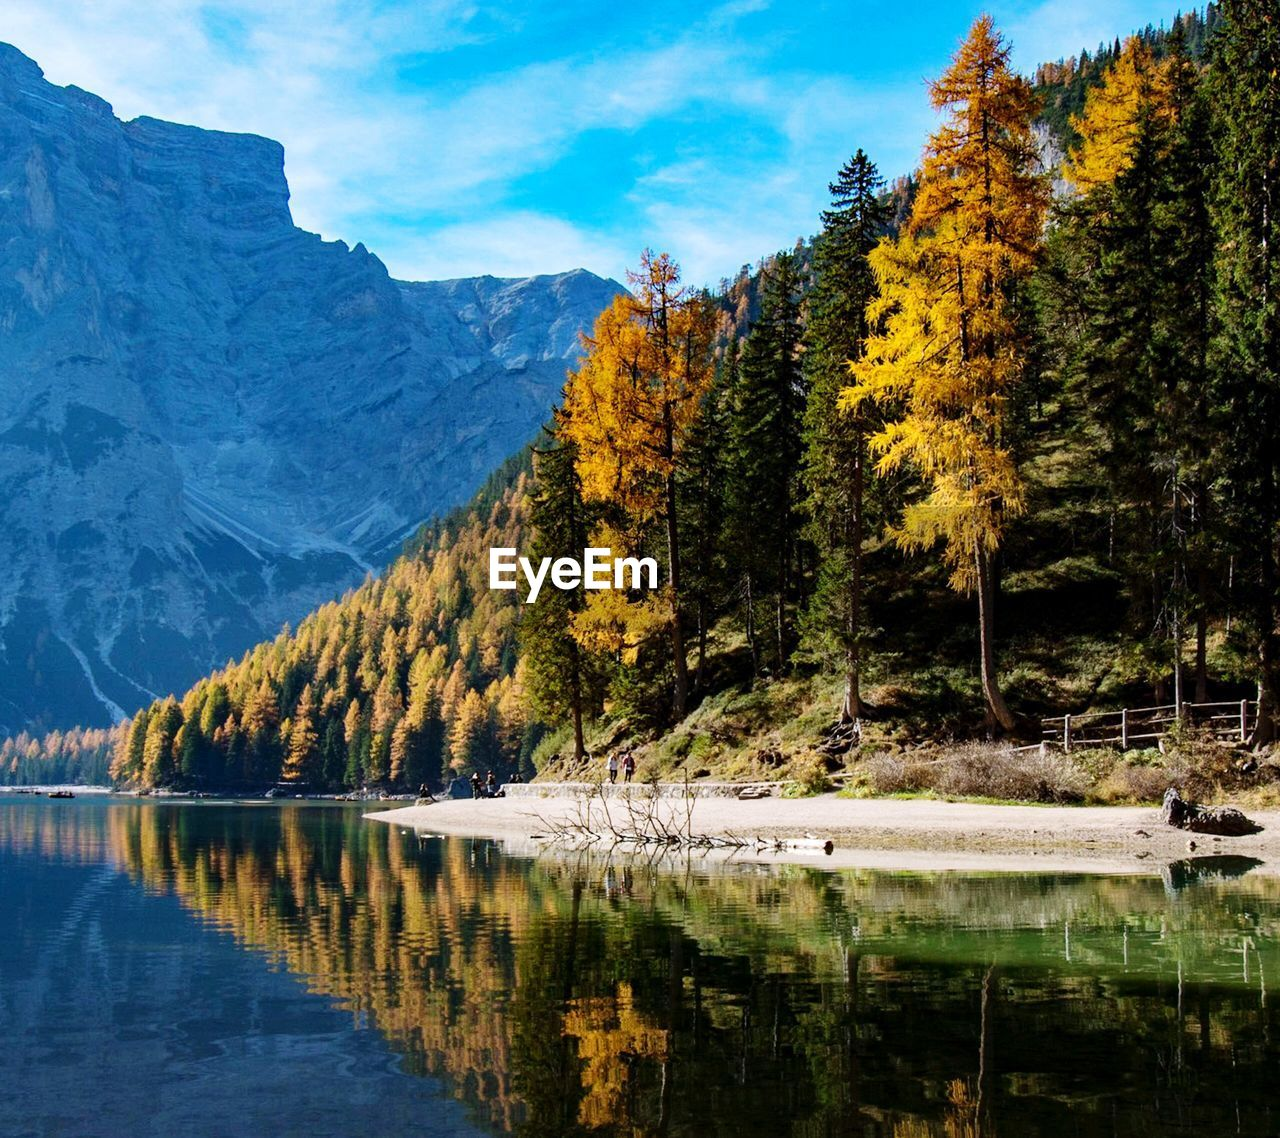 tree, water, beauty in nature, lake, reflection, plant, tranquility, scenics - nature, mountain, tranquil scene, autumn, waterfront, nature, sky, day, non-urban scene, change, idyllic, no people, outdoors, reflection lake